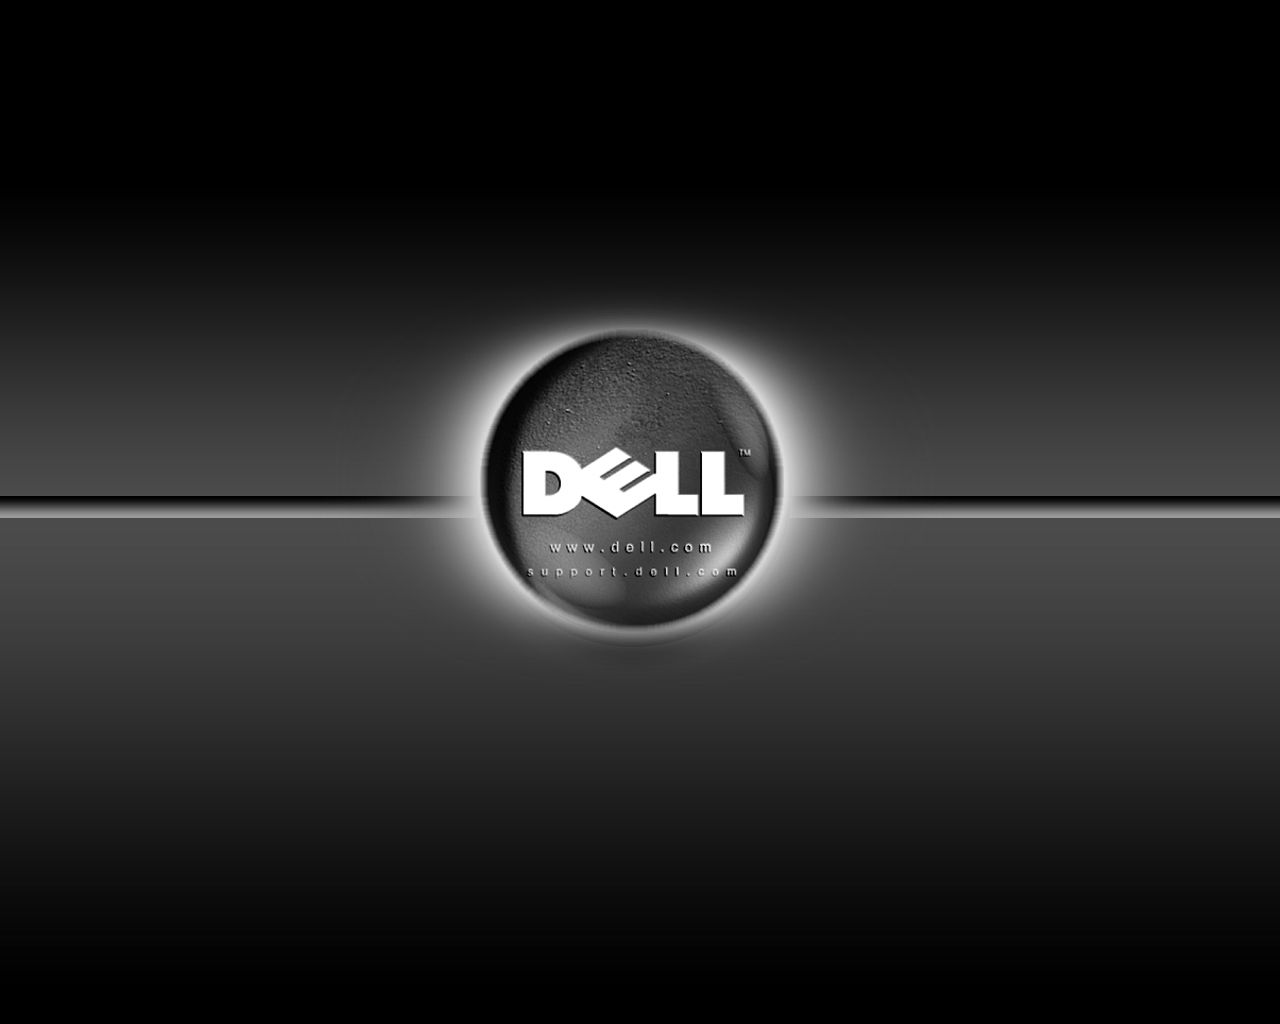 Dell Desktop Backgrounds HD Wallpapers Pinterest Dell